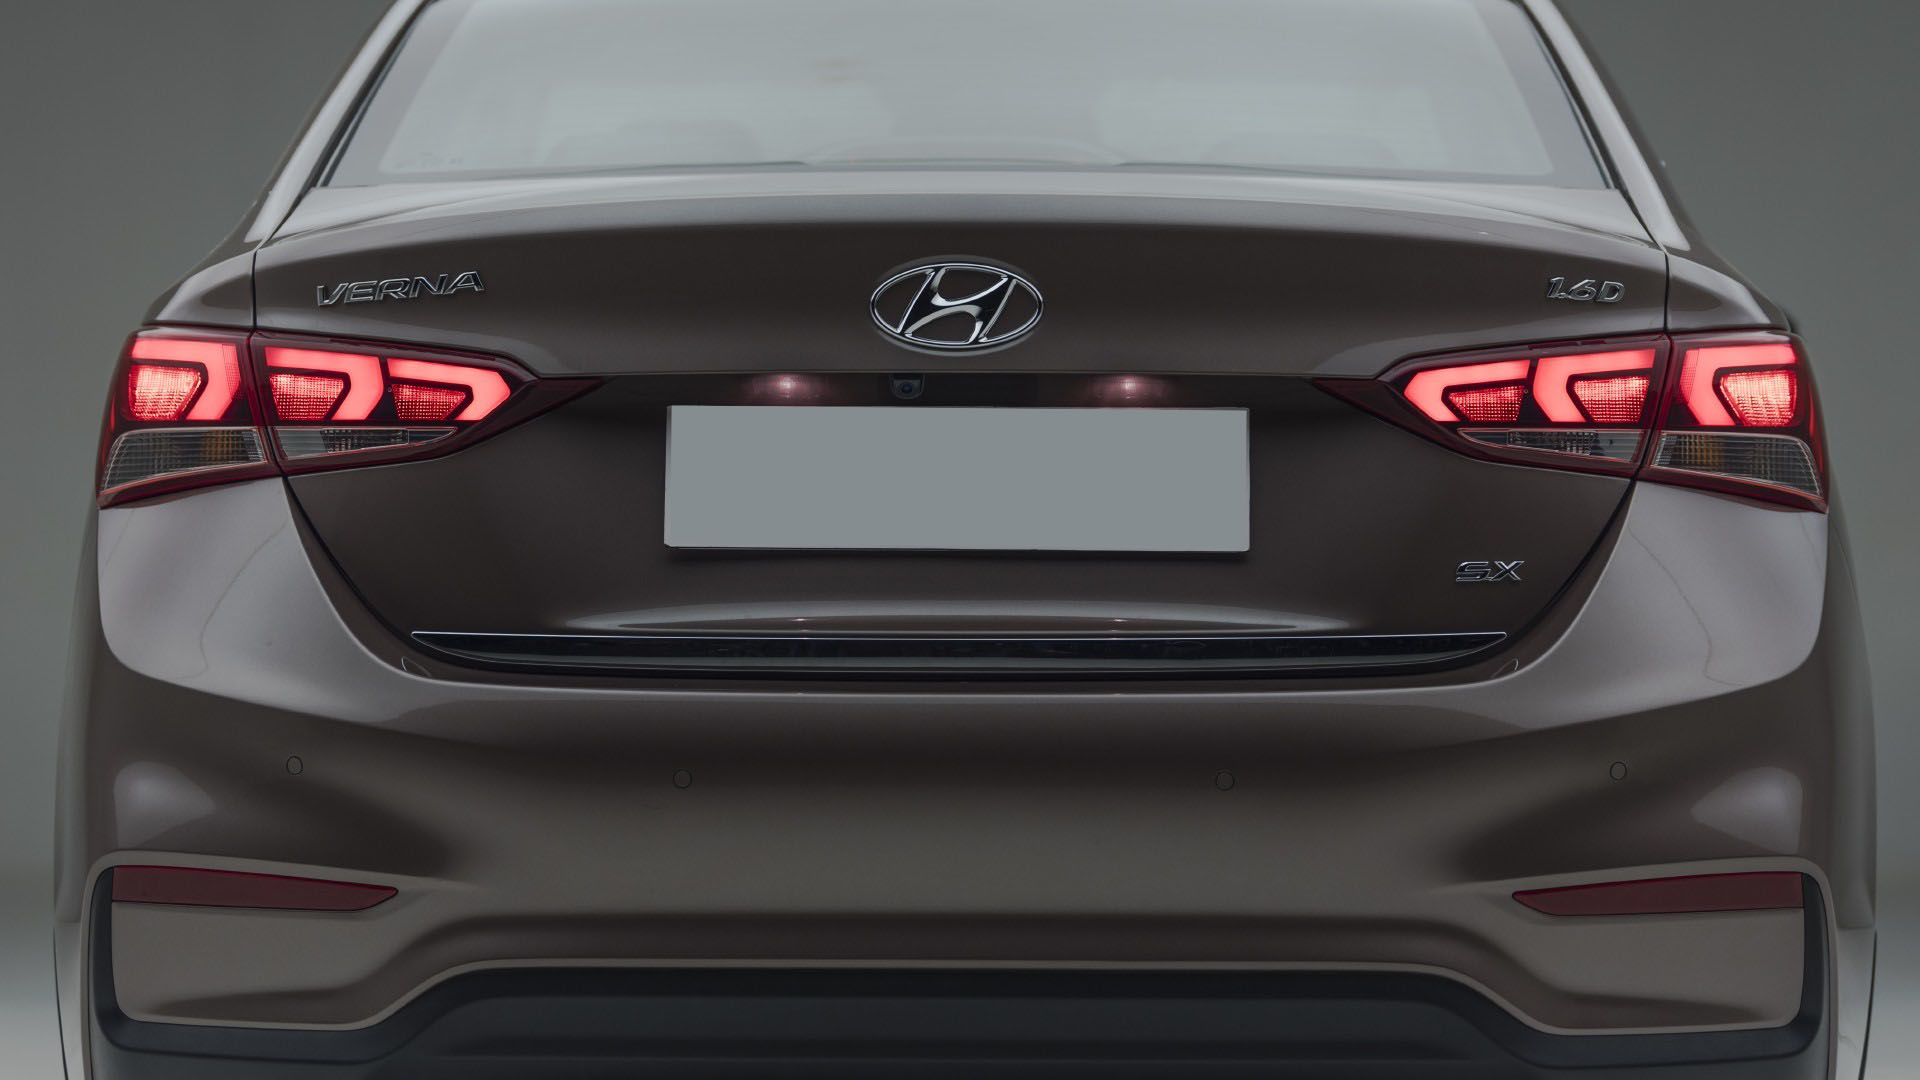 Should Hyundai-Nishat Introduce Verna Sedan in Pakistan? 7